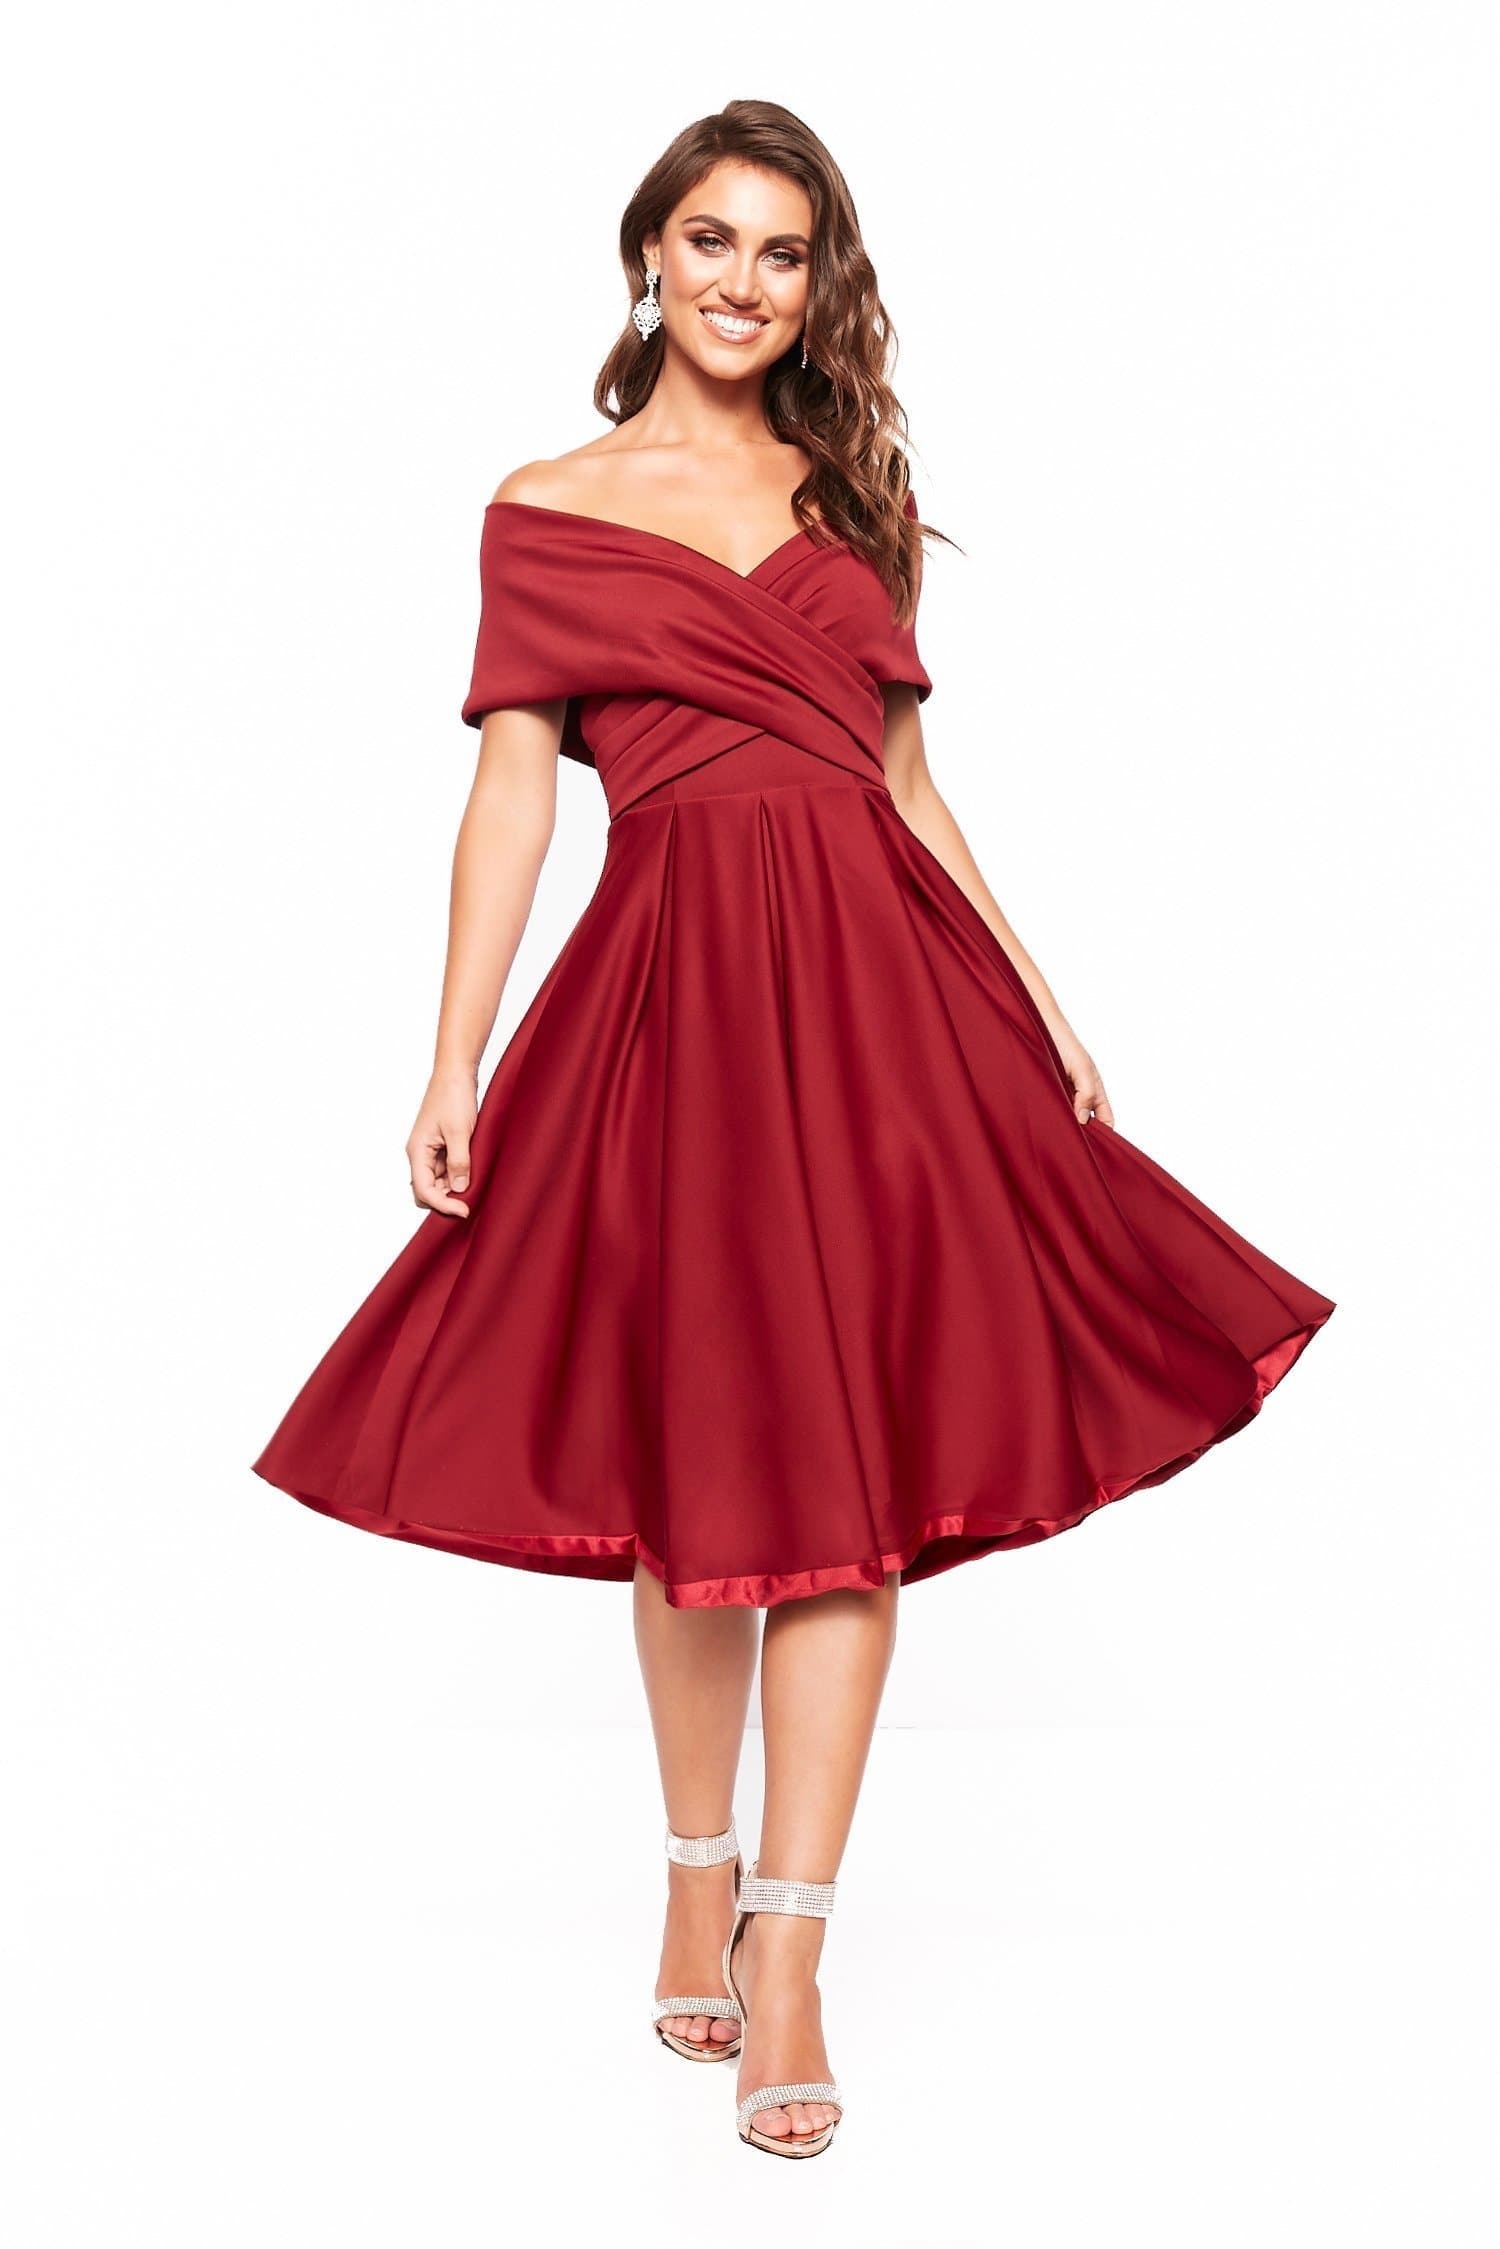 A&N Elyse Flowing Off-Shoulder Cocktail Dress - Burgundy